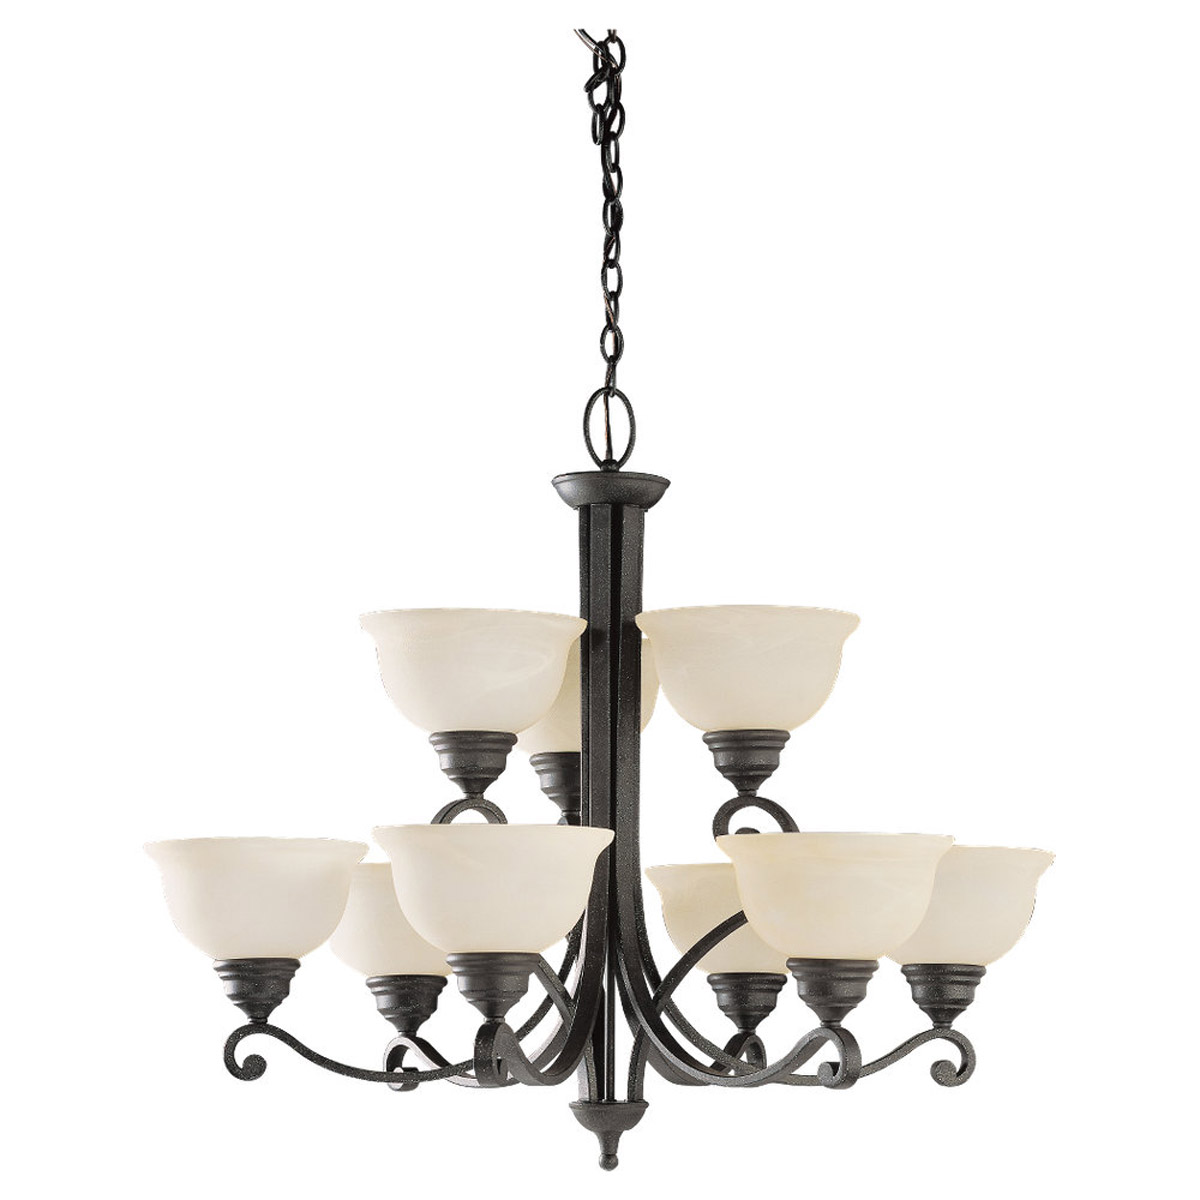 Sea Gull Lighting Serenity 9 Light Chandelier in Weathered Iron 39060BLE-07